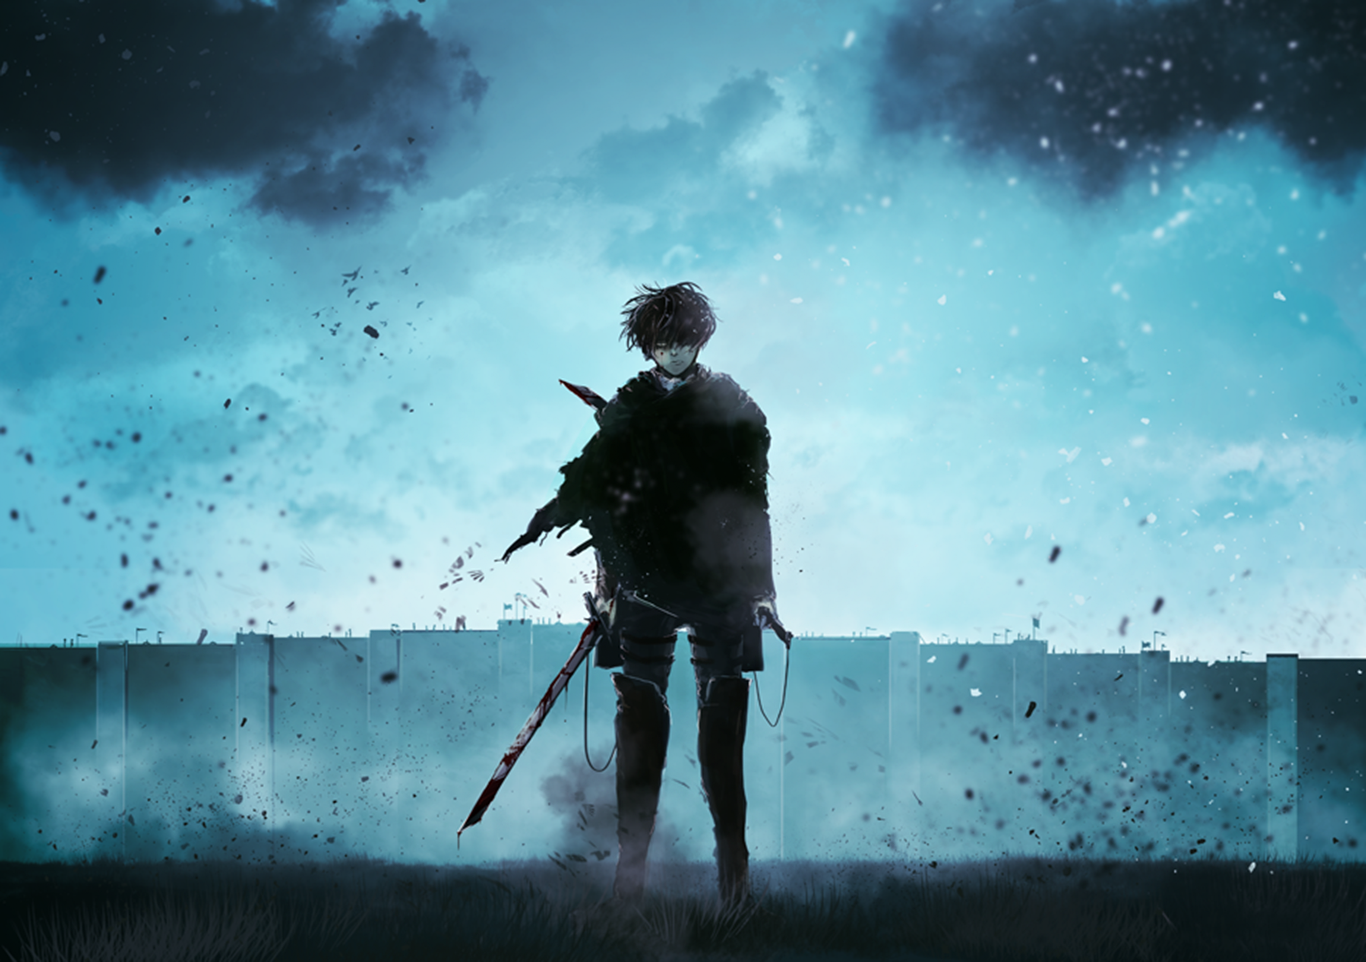 Levi Ackerman Computer Wallpapers Desktop Backgrounds 1366x962 Id 665354 Attack On Titan Levi Attack On Titan Attack On Titan Anime